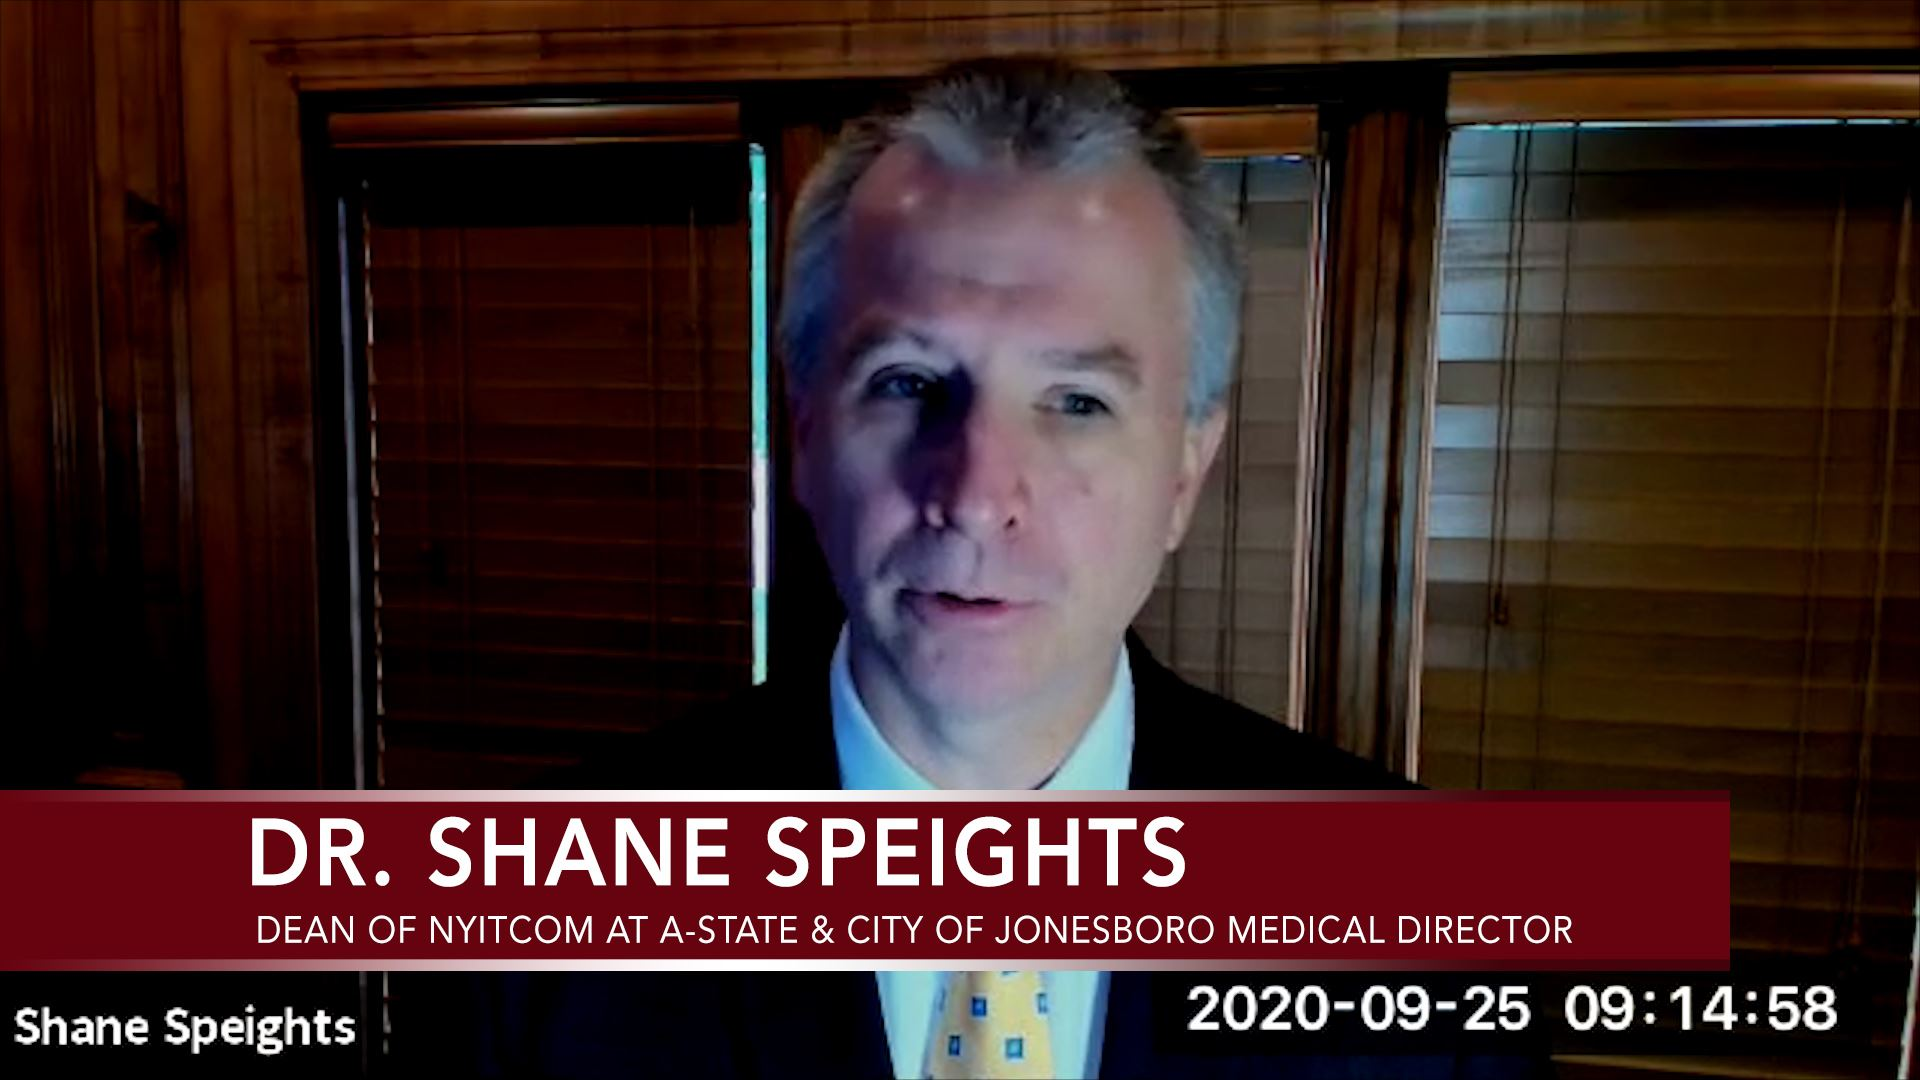 Dr. Shane Speights speaking on a web camera